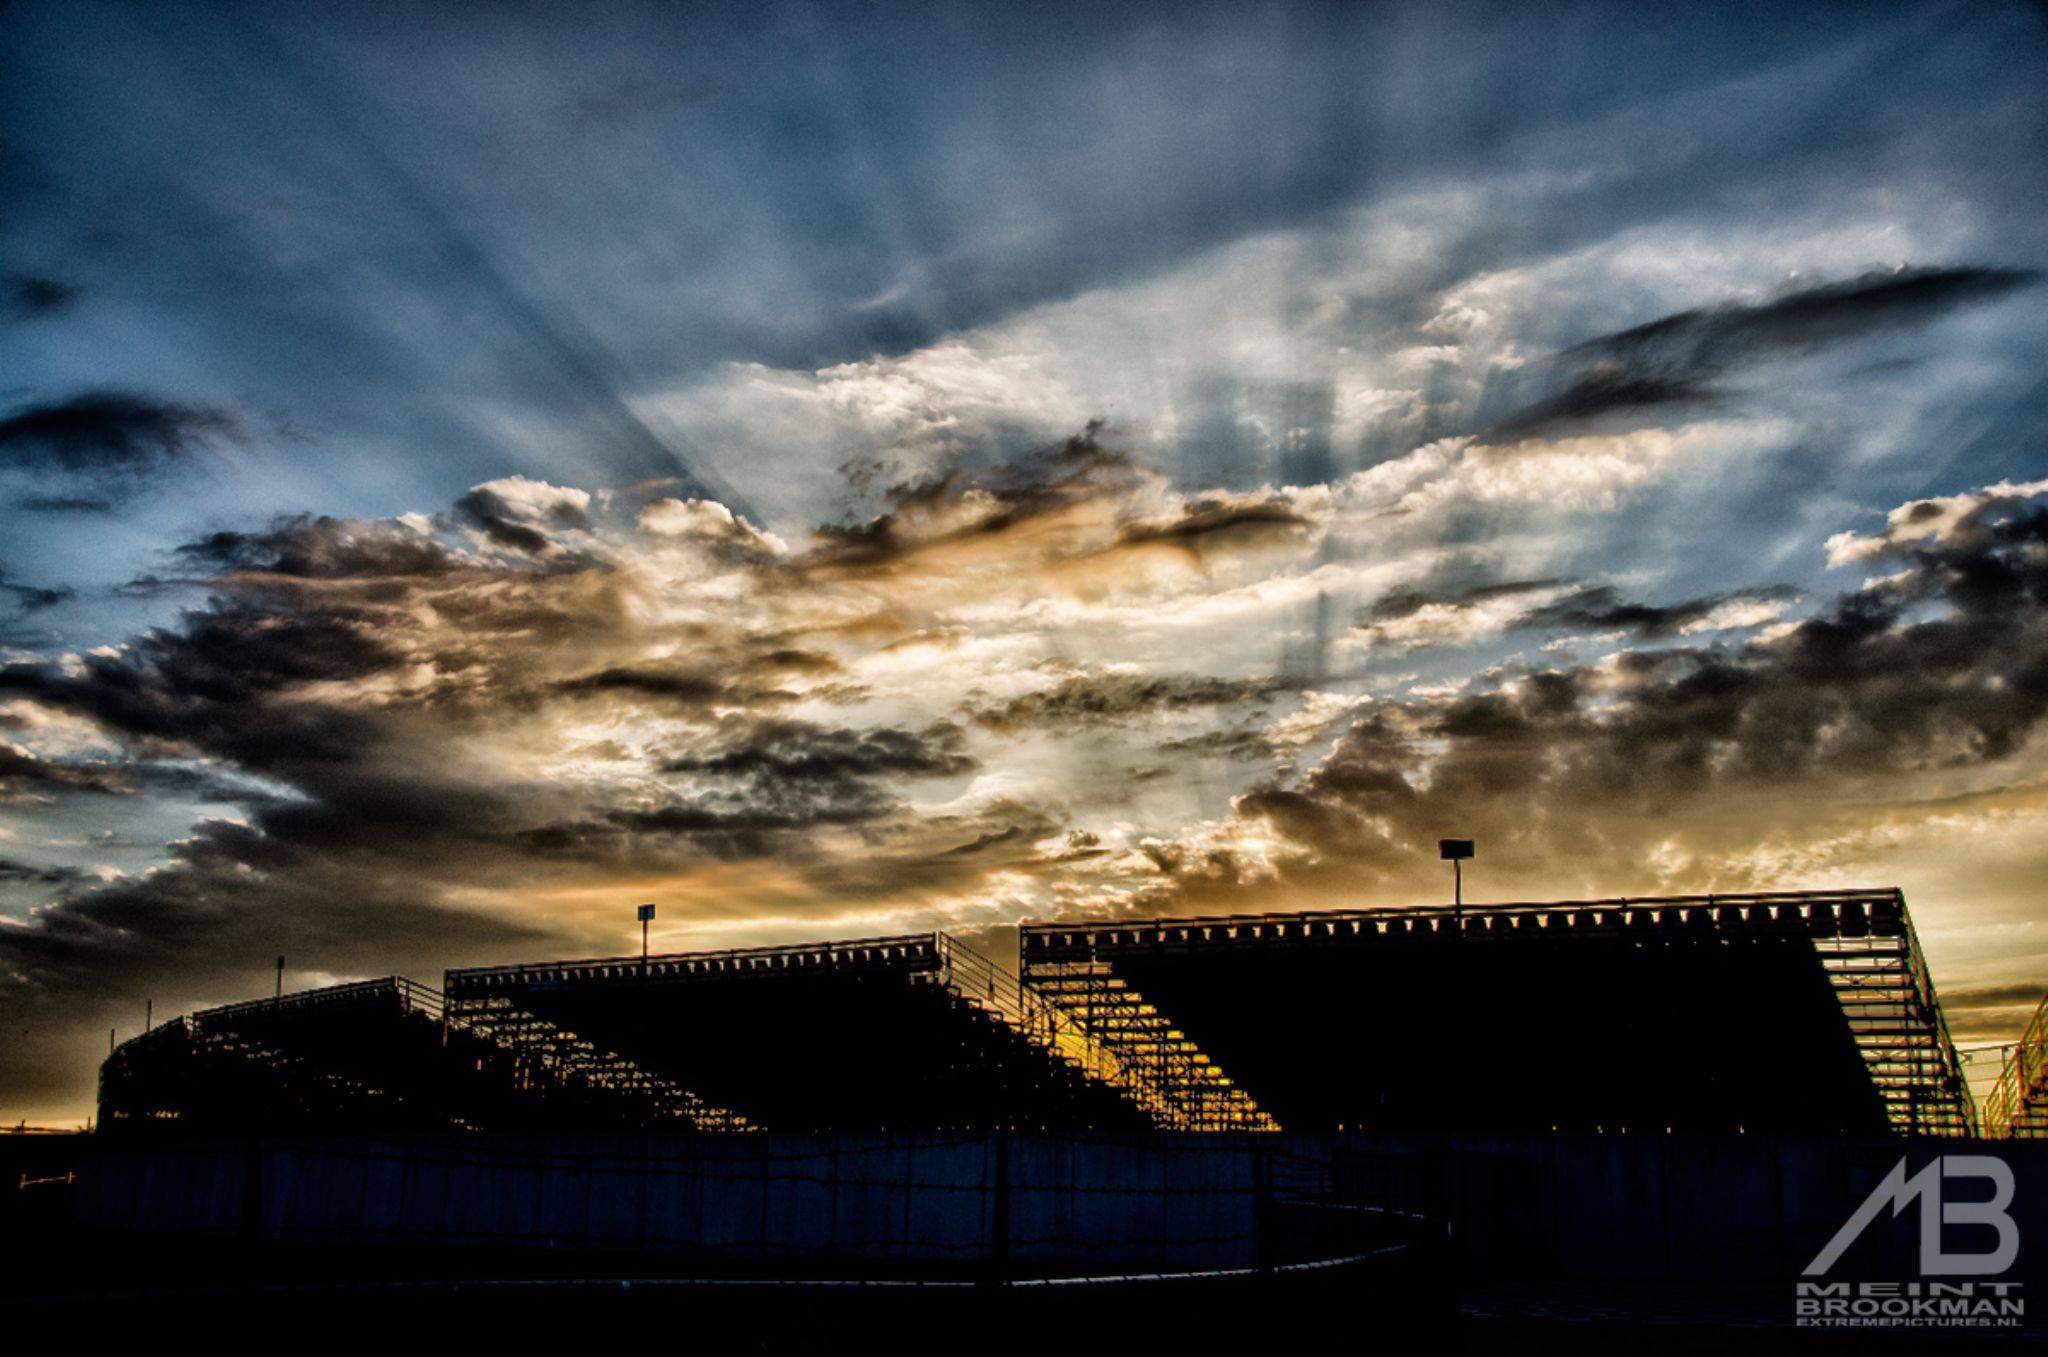 Dutch TT track in the evening  by Meint Brookman